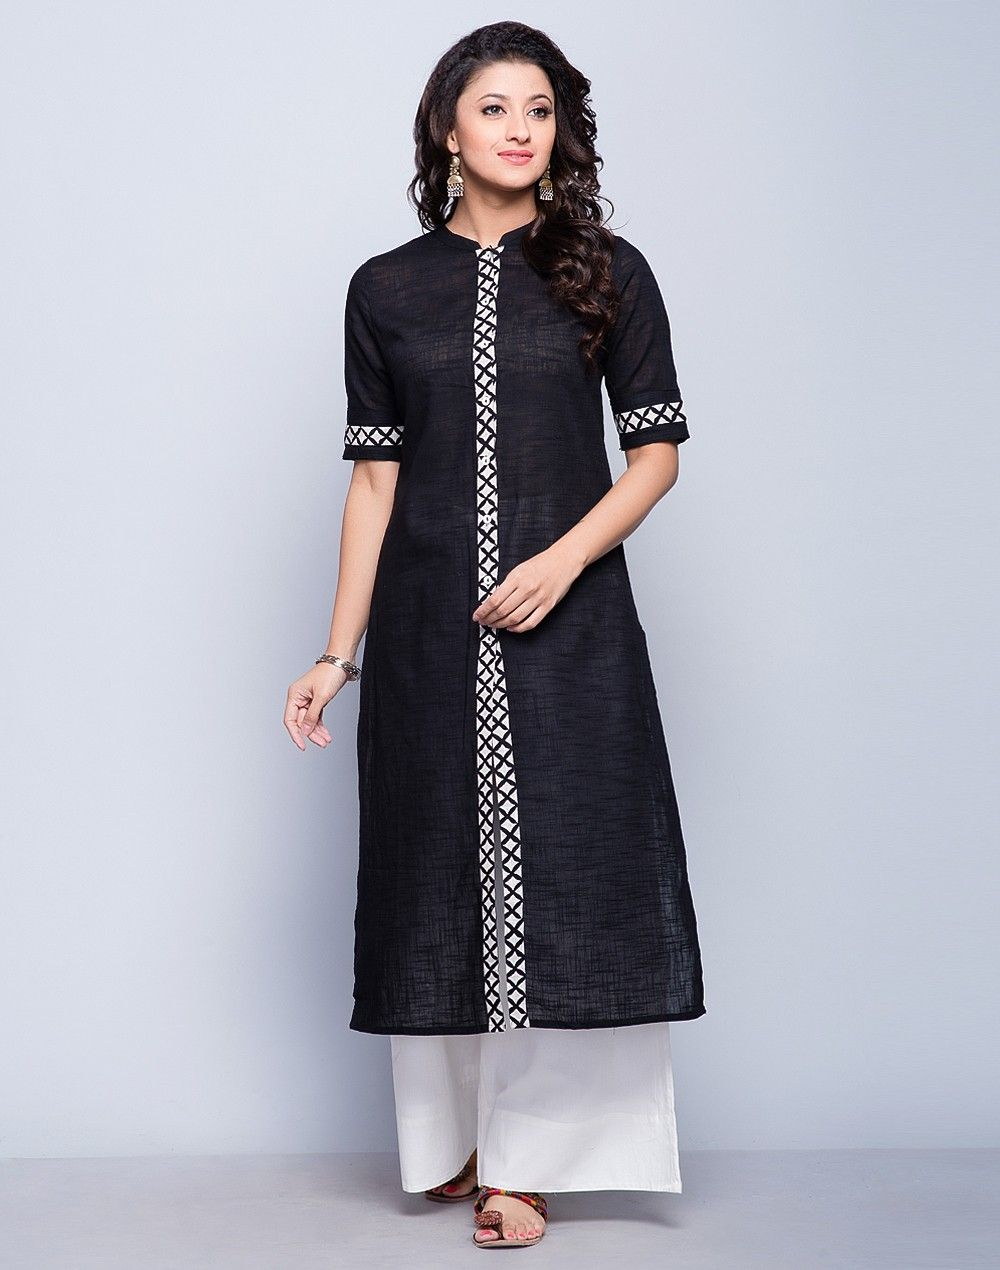 Simple yet graceful this kurta is perfect clothing for special